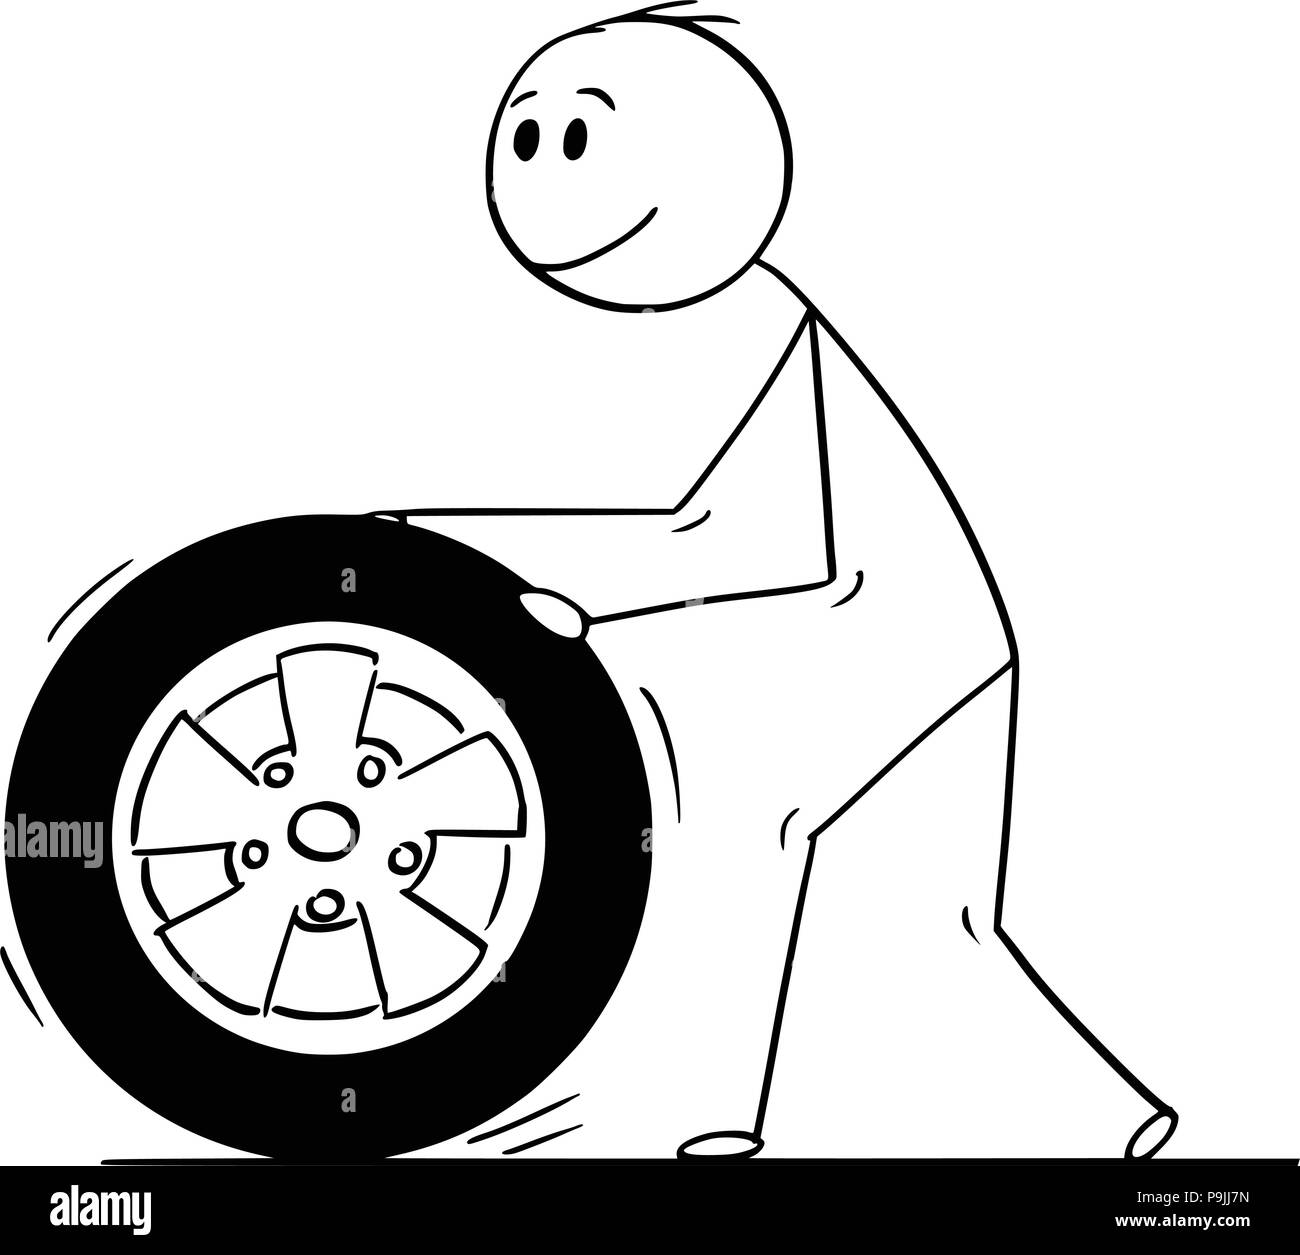 Cartoon Of Man Rolling Car Wheel And Tyre Stock Vector Art Amp Illustration Vector Image